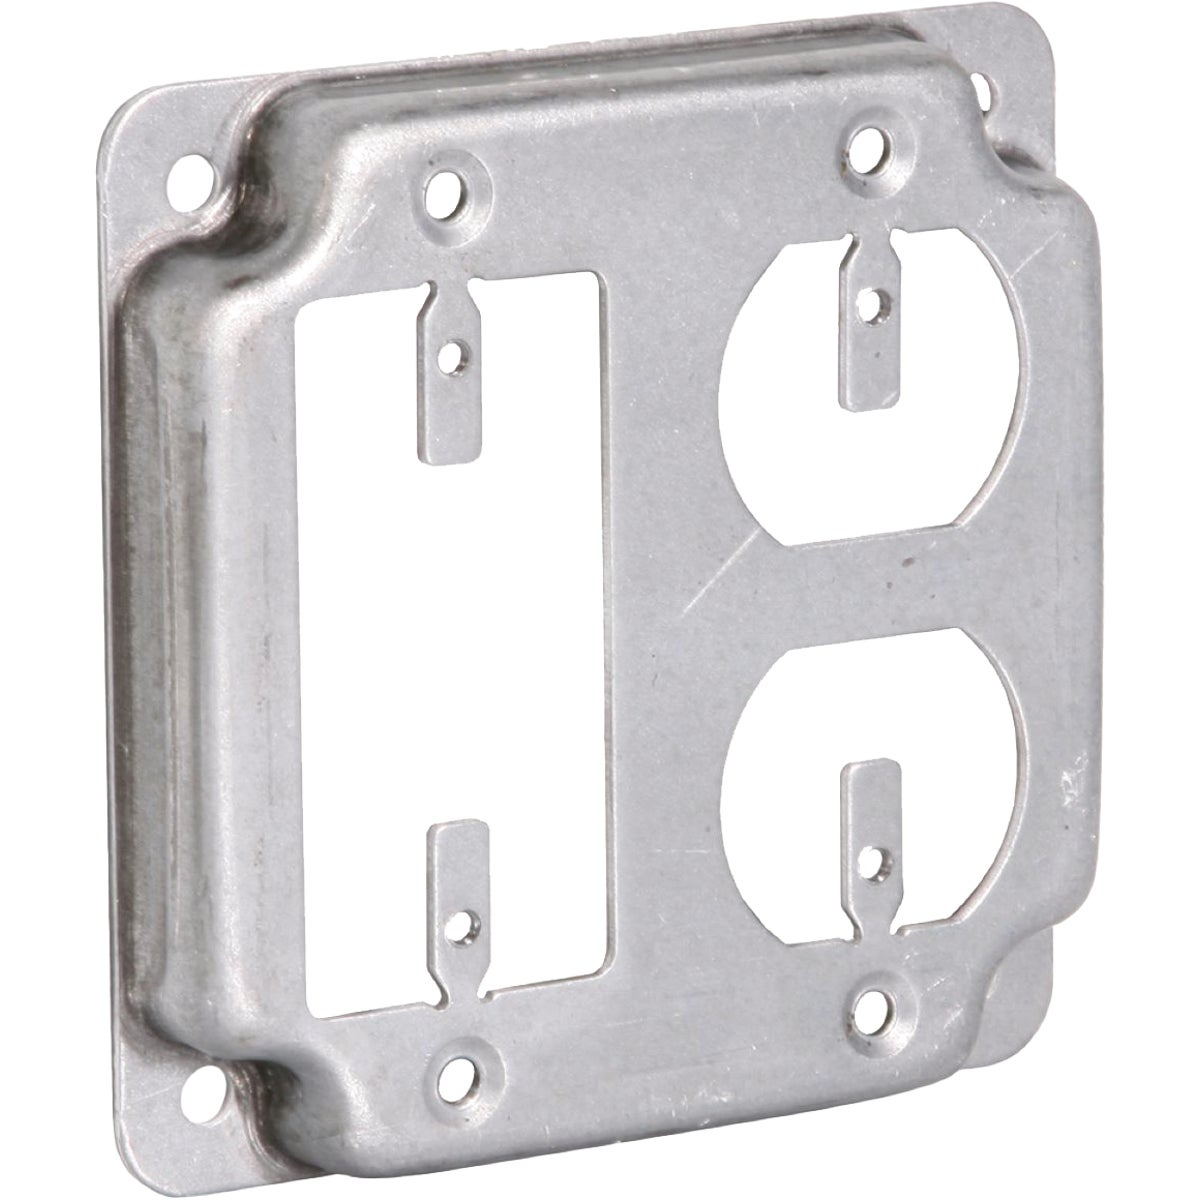 "4"" SQ GFI/OUTLET COVER"